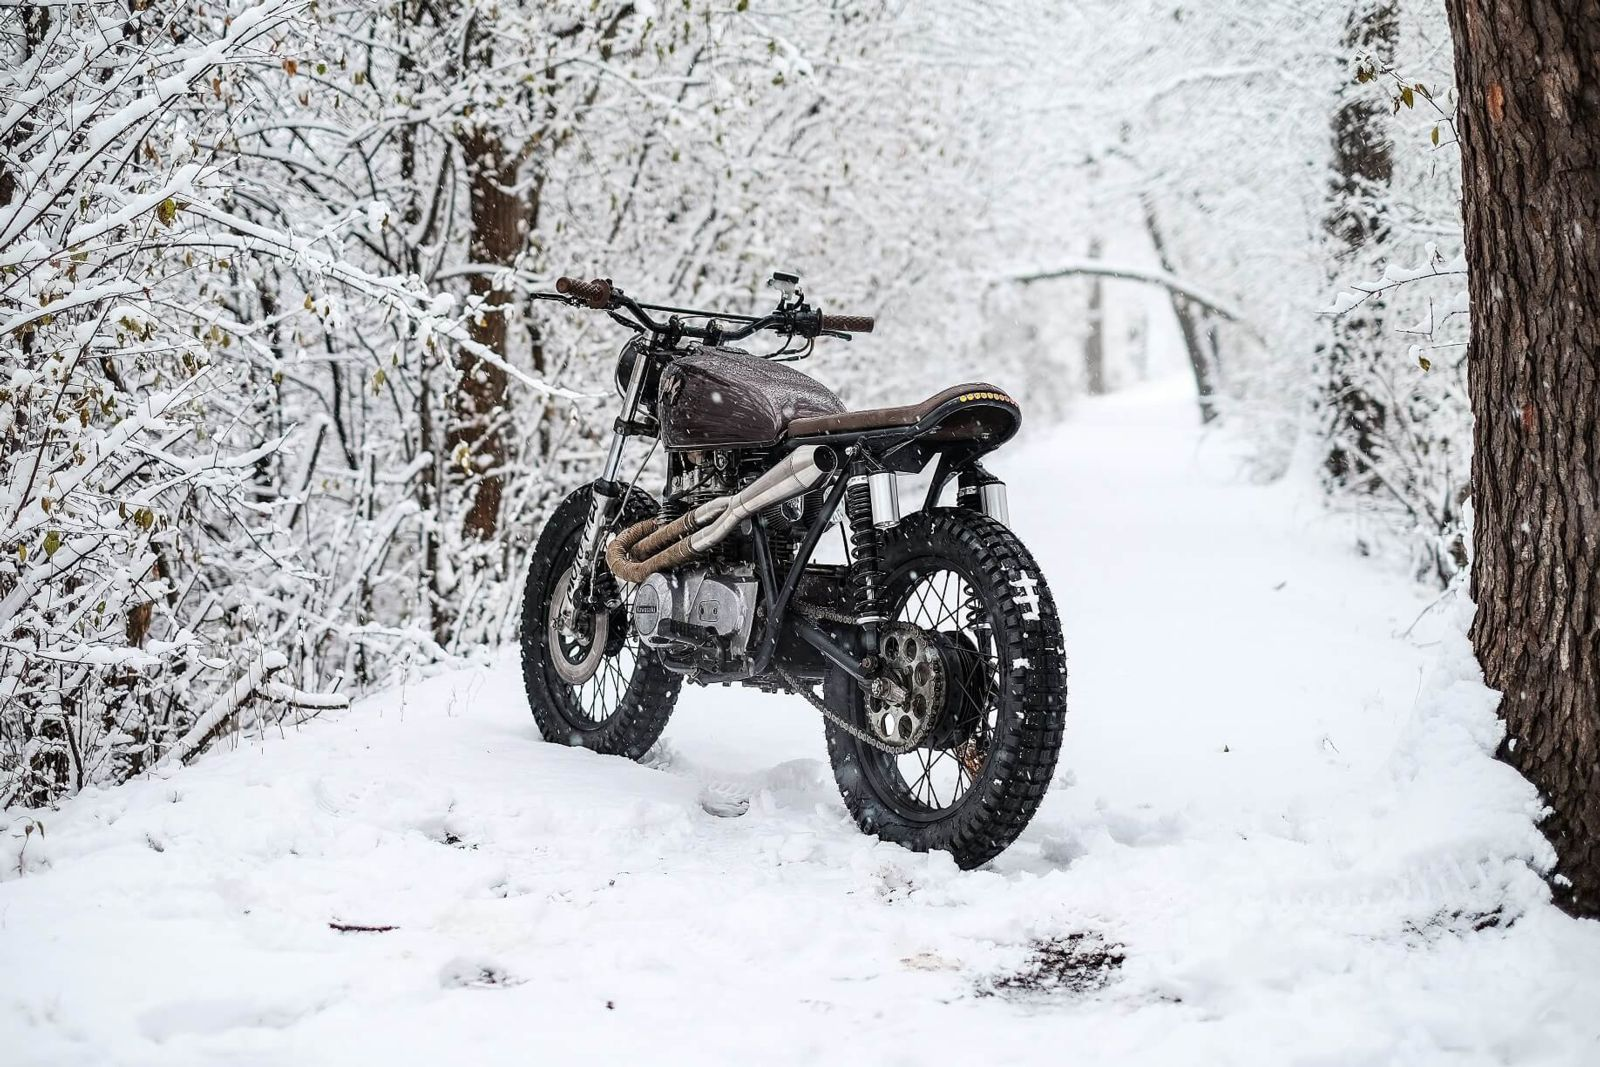 Motorcycle on snowy street